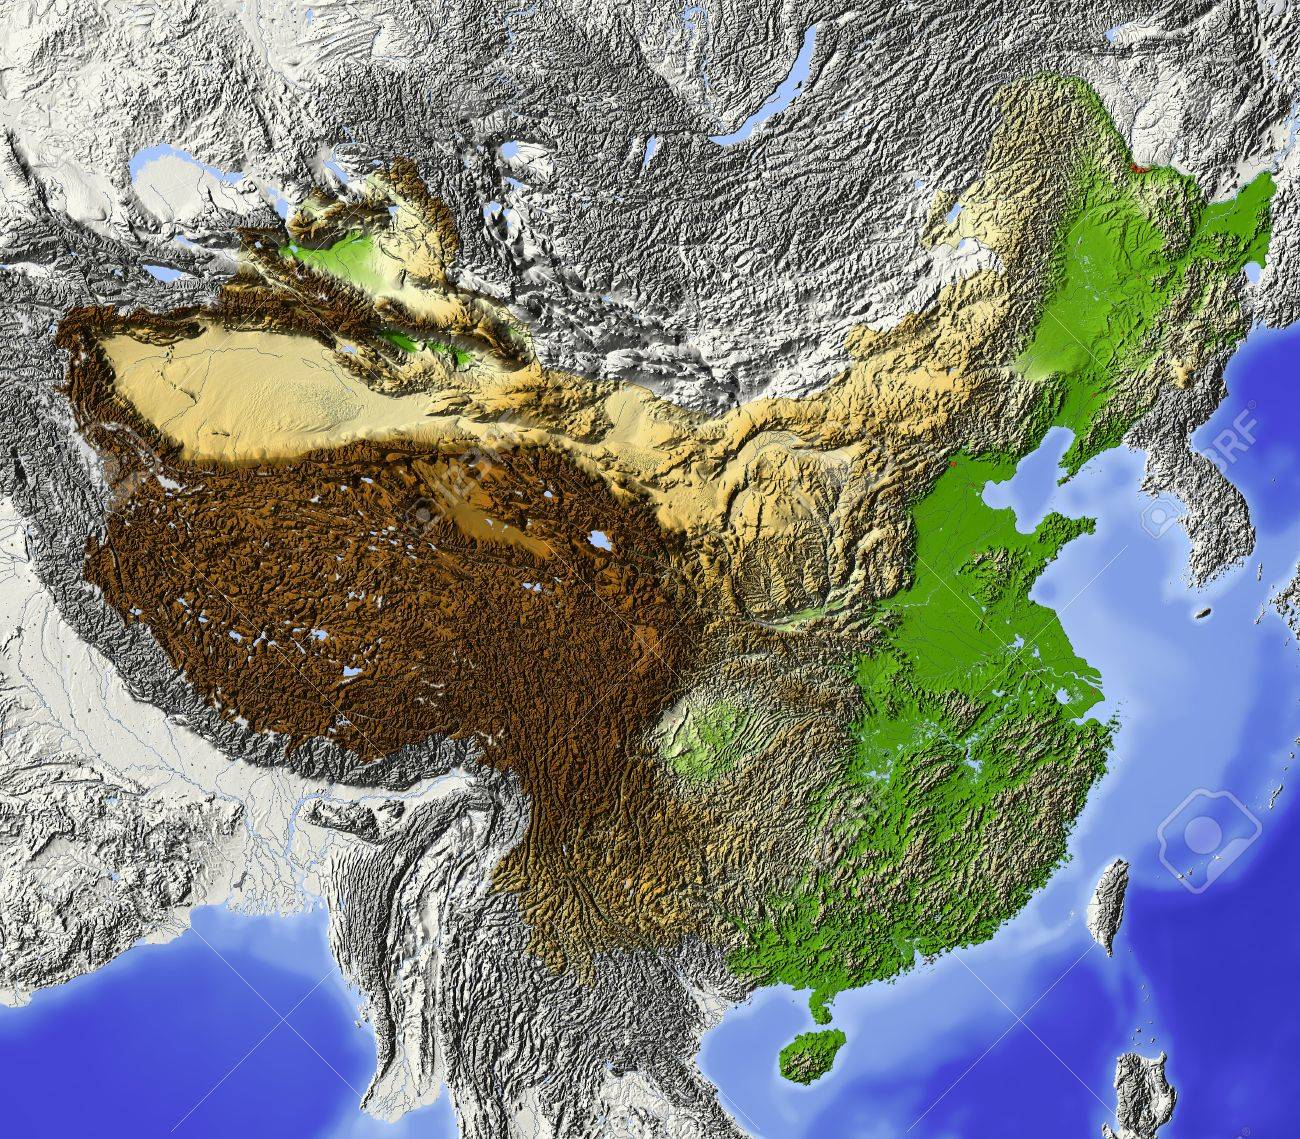 Map Of China And Surrounding Areas.China Shaded Relief Map With Rivers And Major Urban Areas Stock